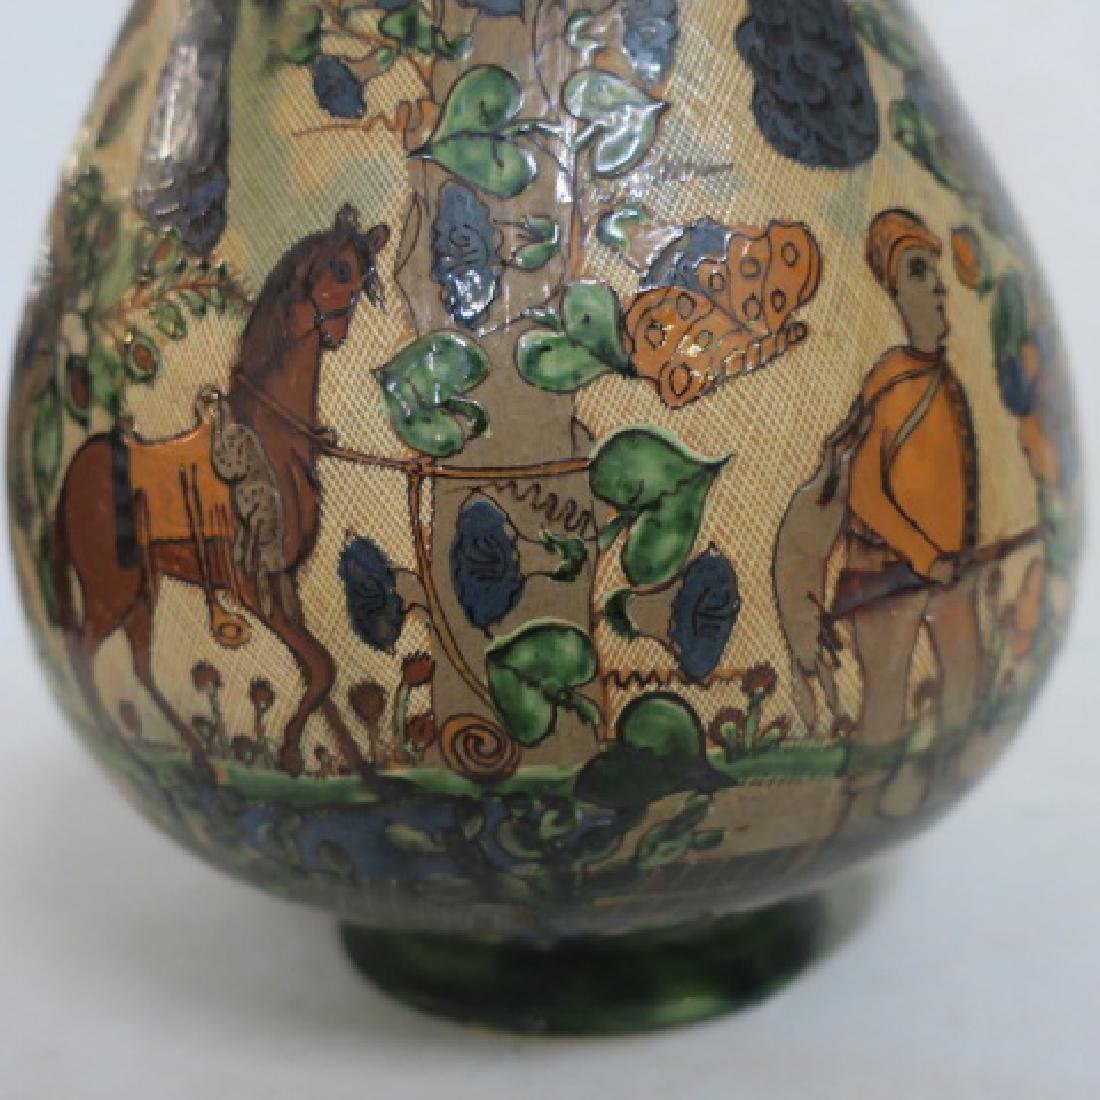 Hand Painted Long Neck Bulbous Vase: - 4